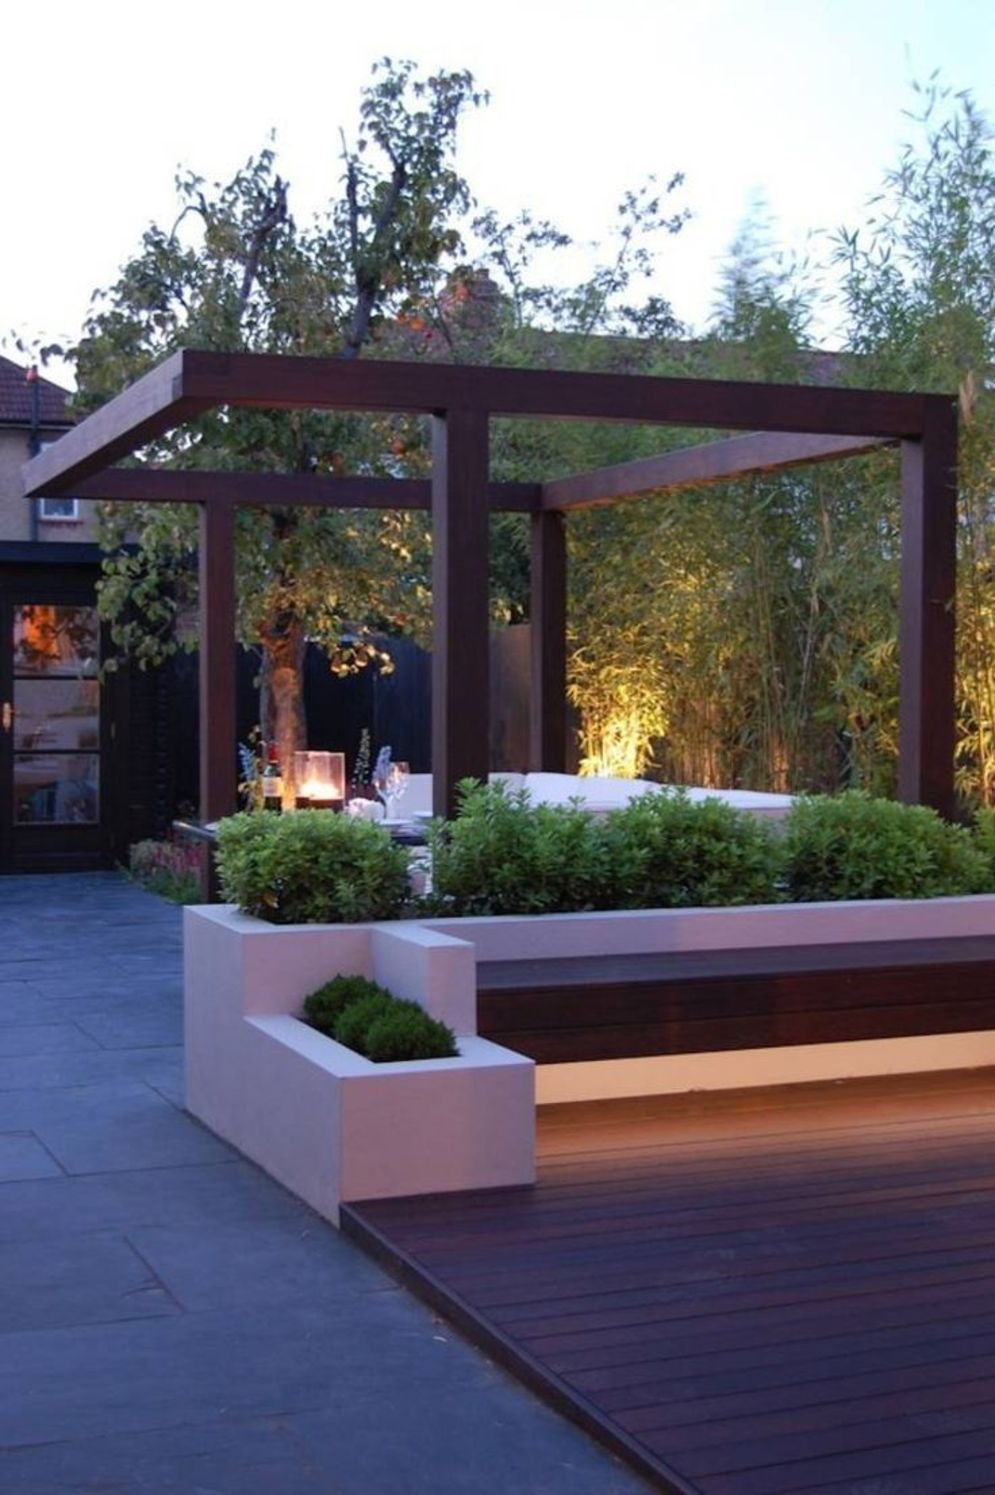 Beautiful garden lighting ideas with ground level ambient light giving luxurious resorts look Image 32